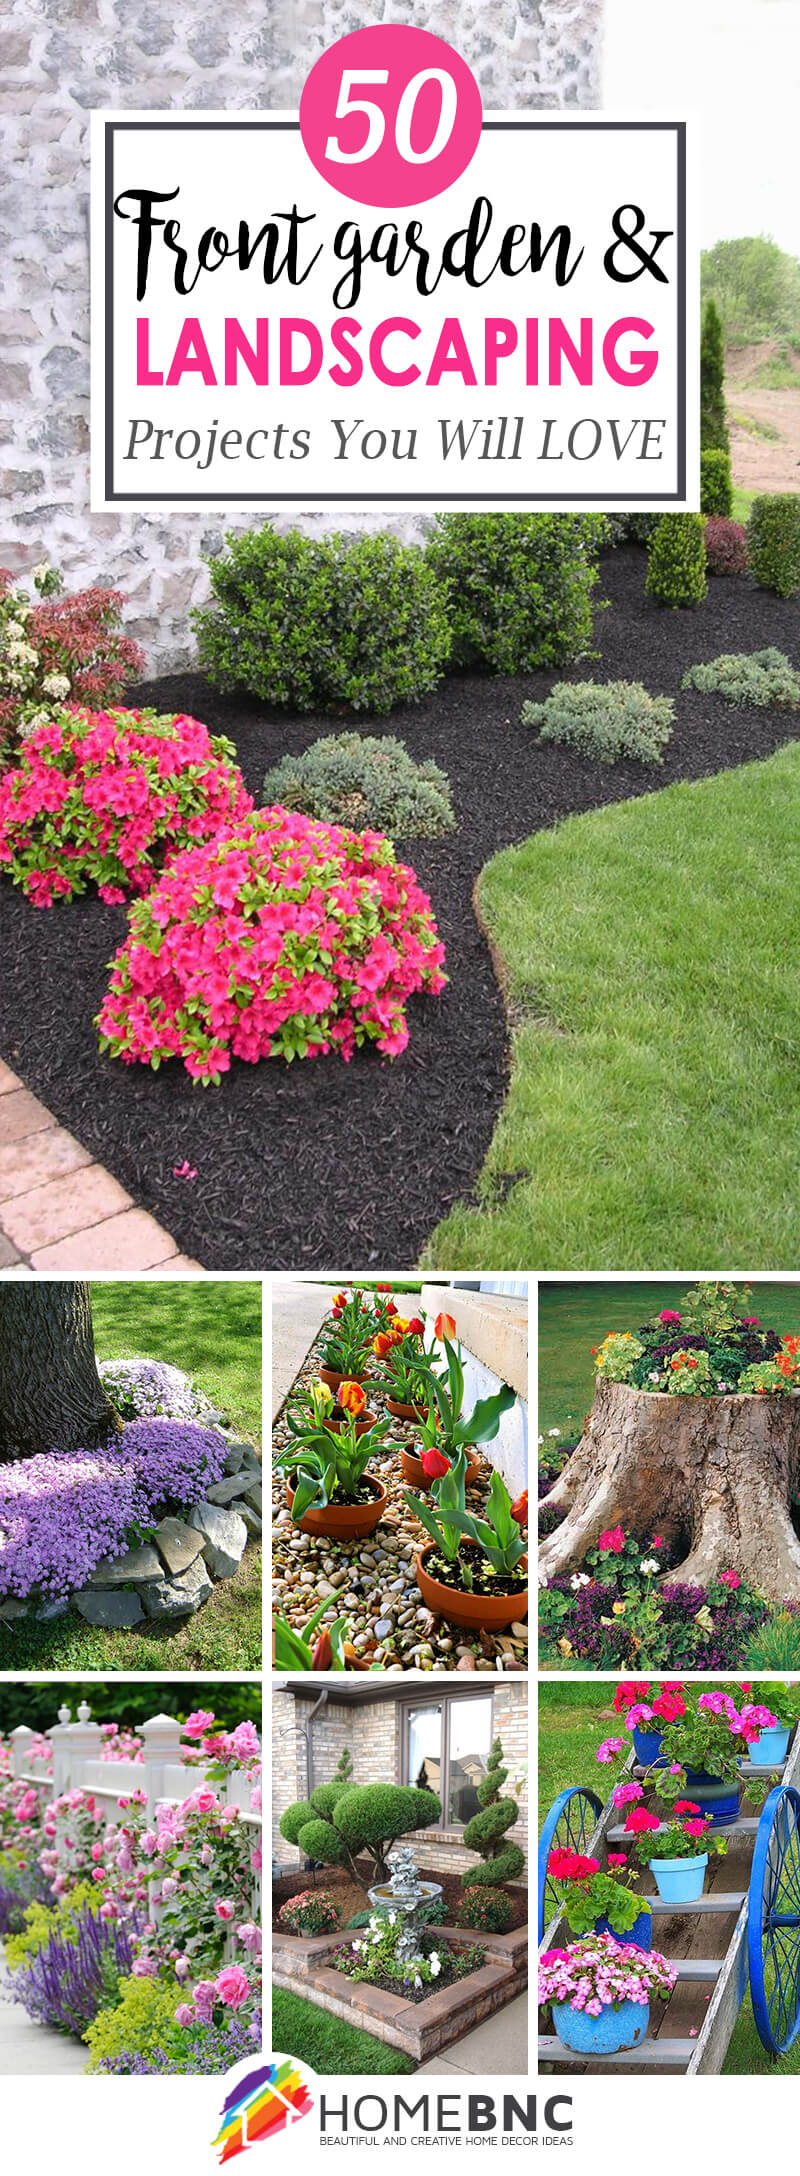 50 creative front yard landscaping ideas and garden designs for 2018 - Garden Ideas Landscaping